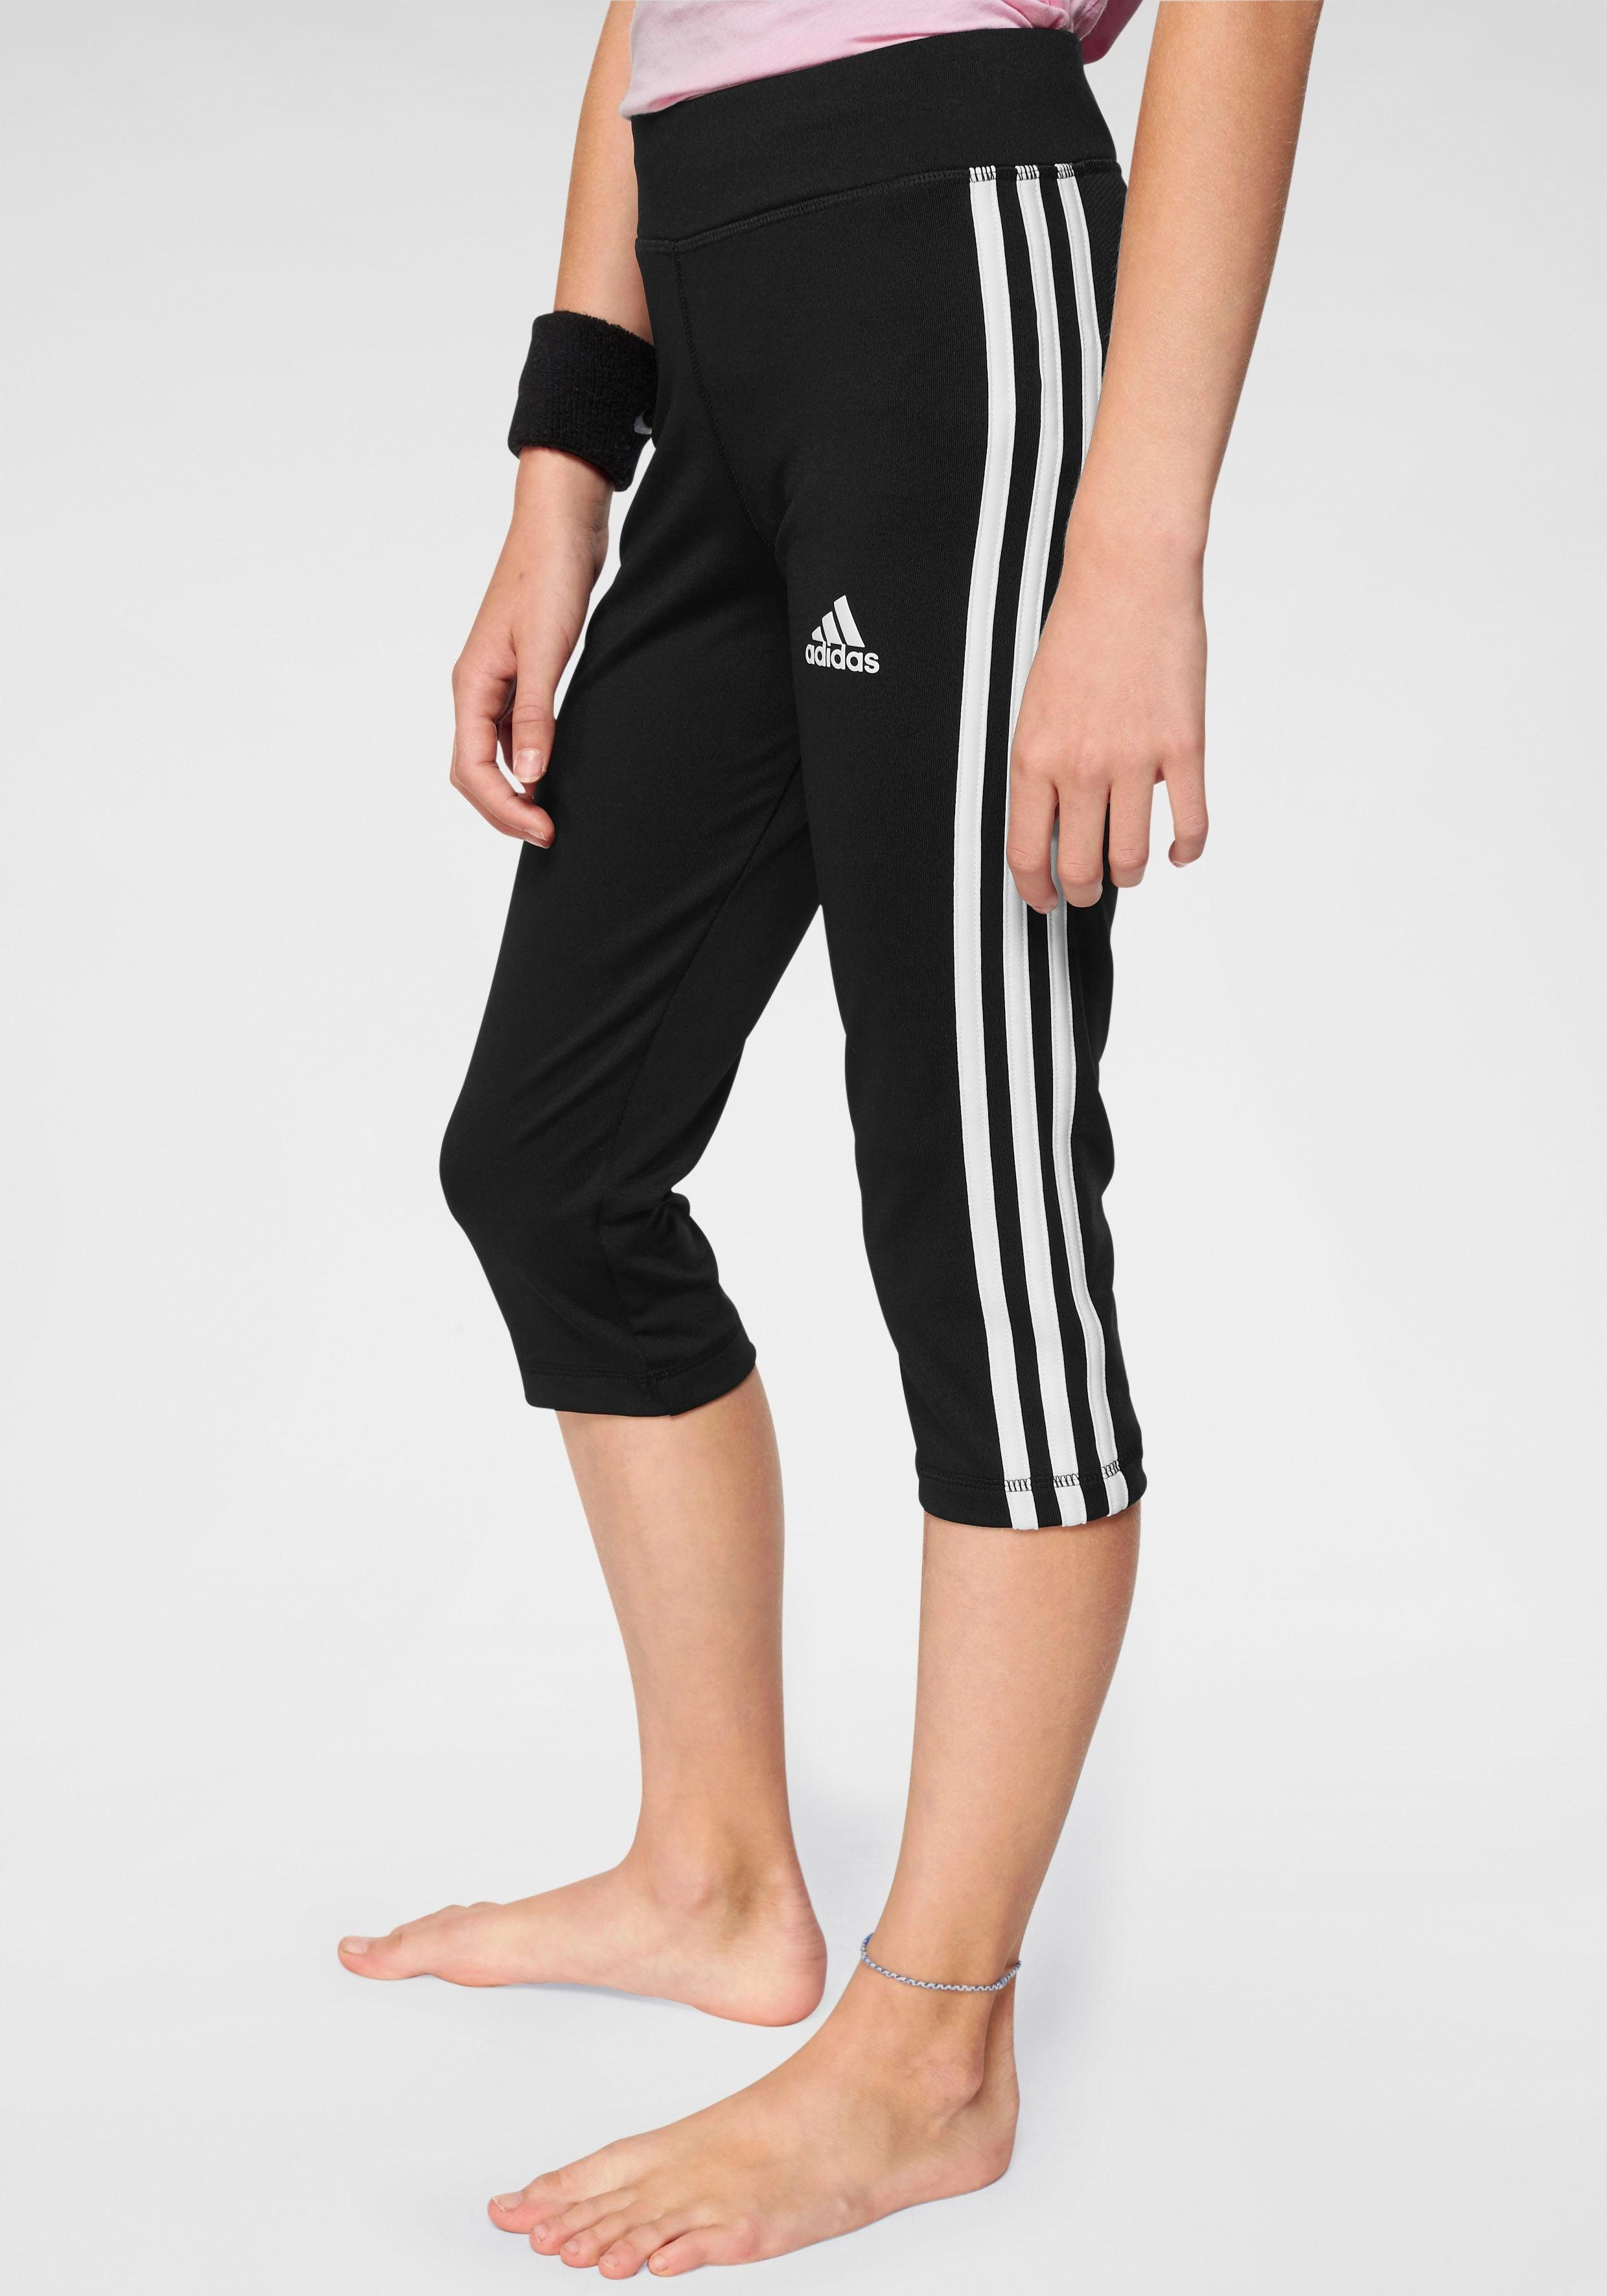 adidas Performance Funktionstights »YOUNG GIRL TRAINING EQUIPMENT 3 STRIPES 34 TIGHT« online kaufen | OTTO